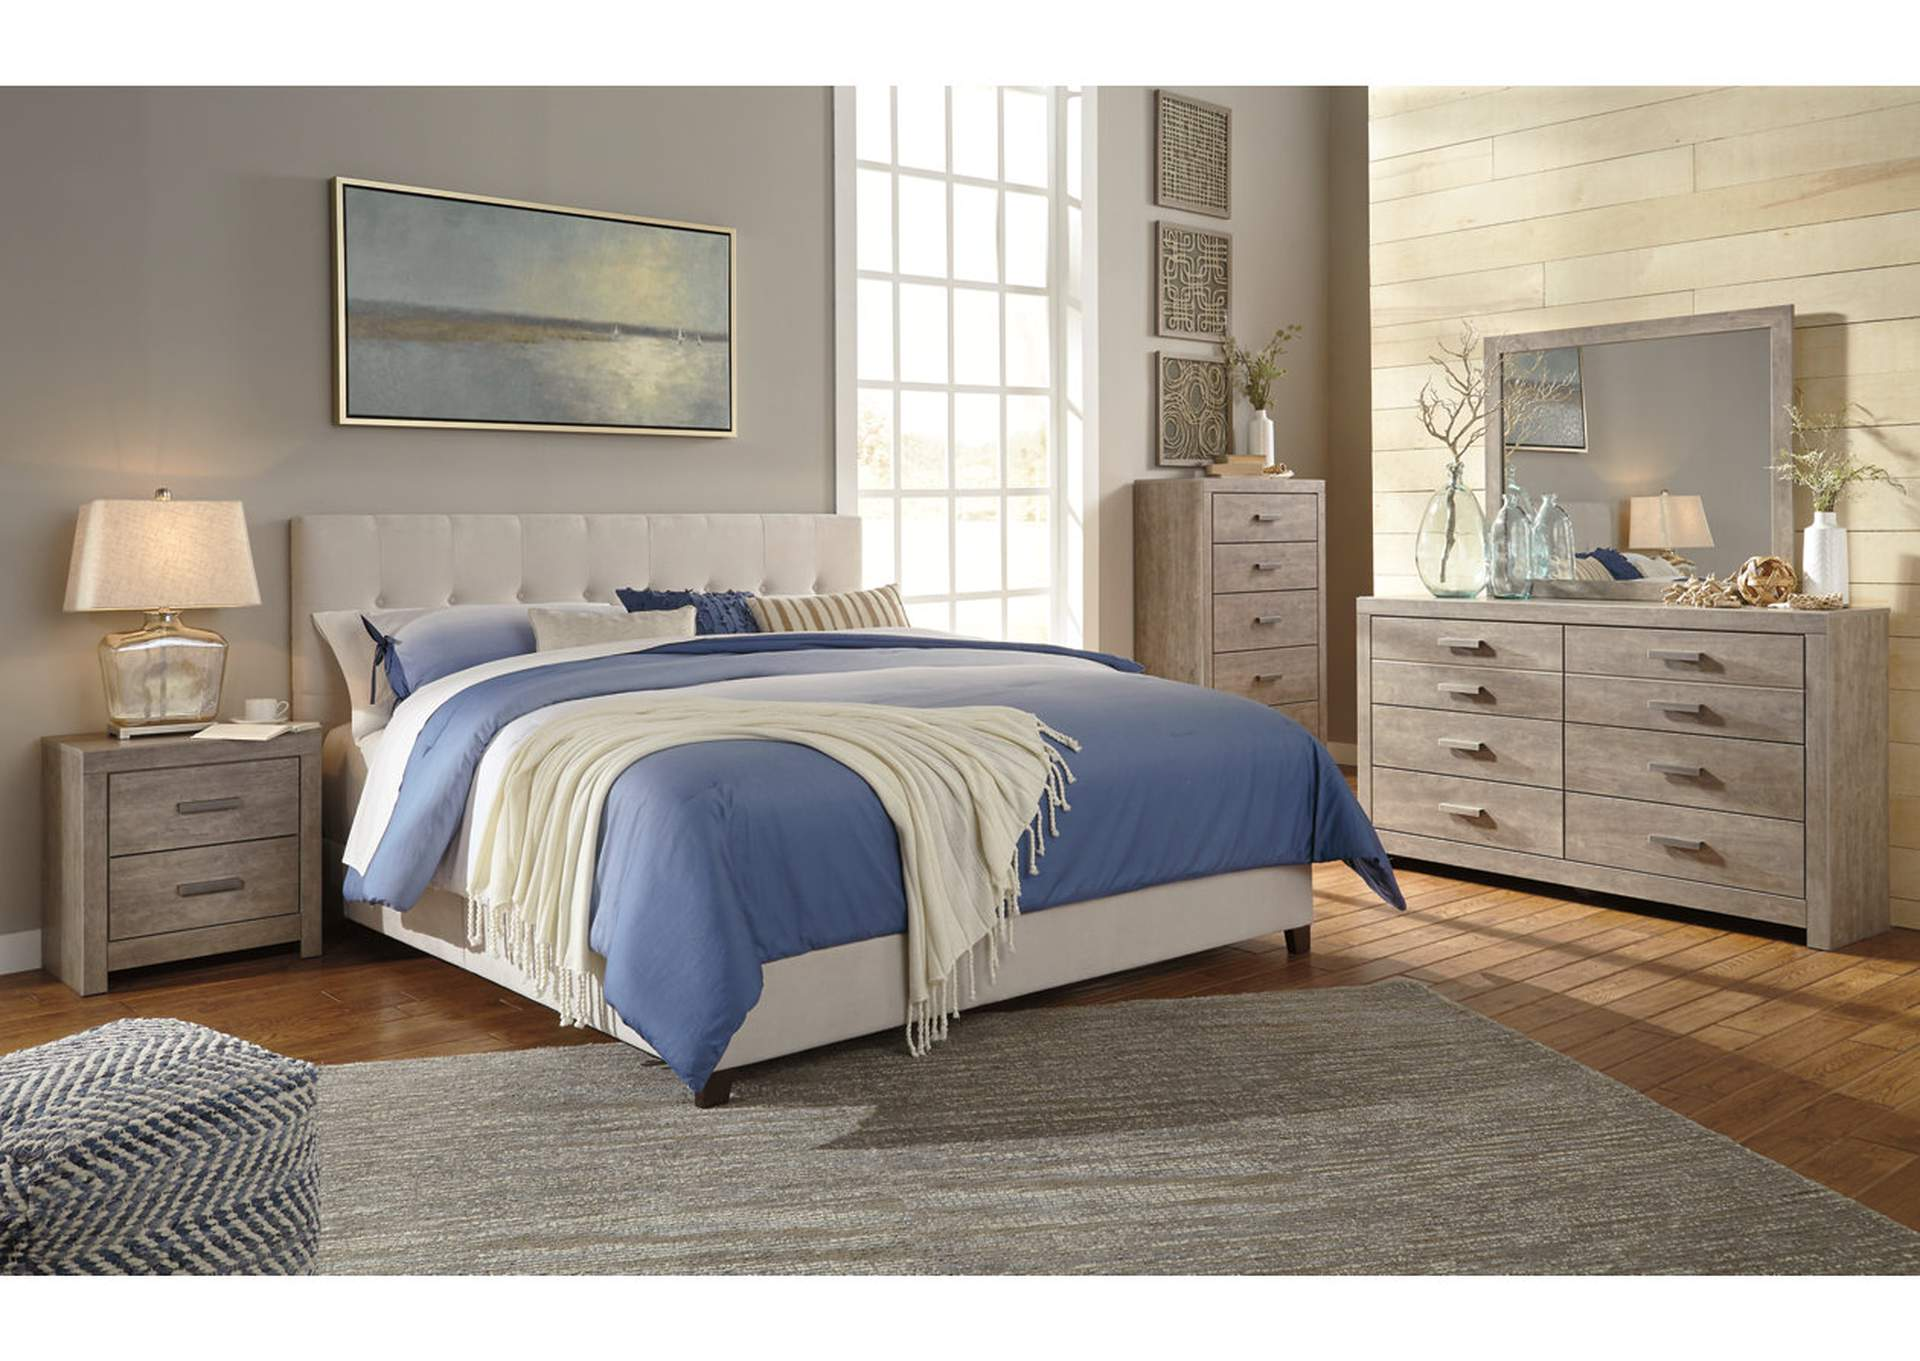 King Cream Upholstered Bed,ABF Signature Design by Ashley